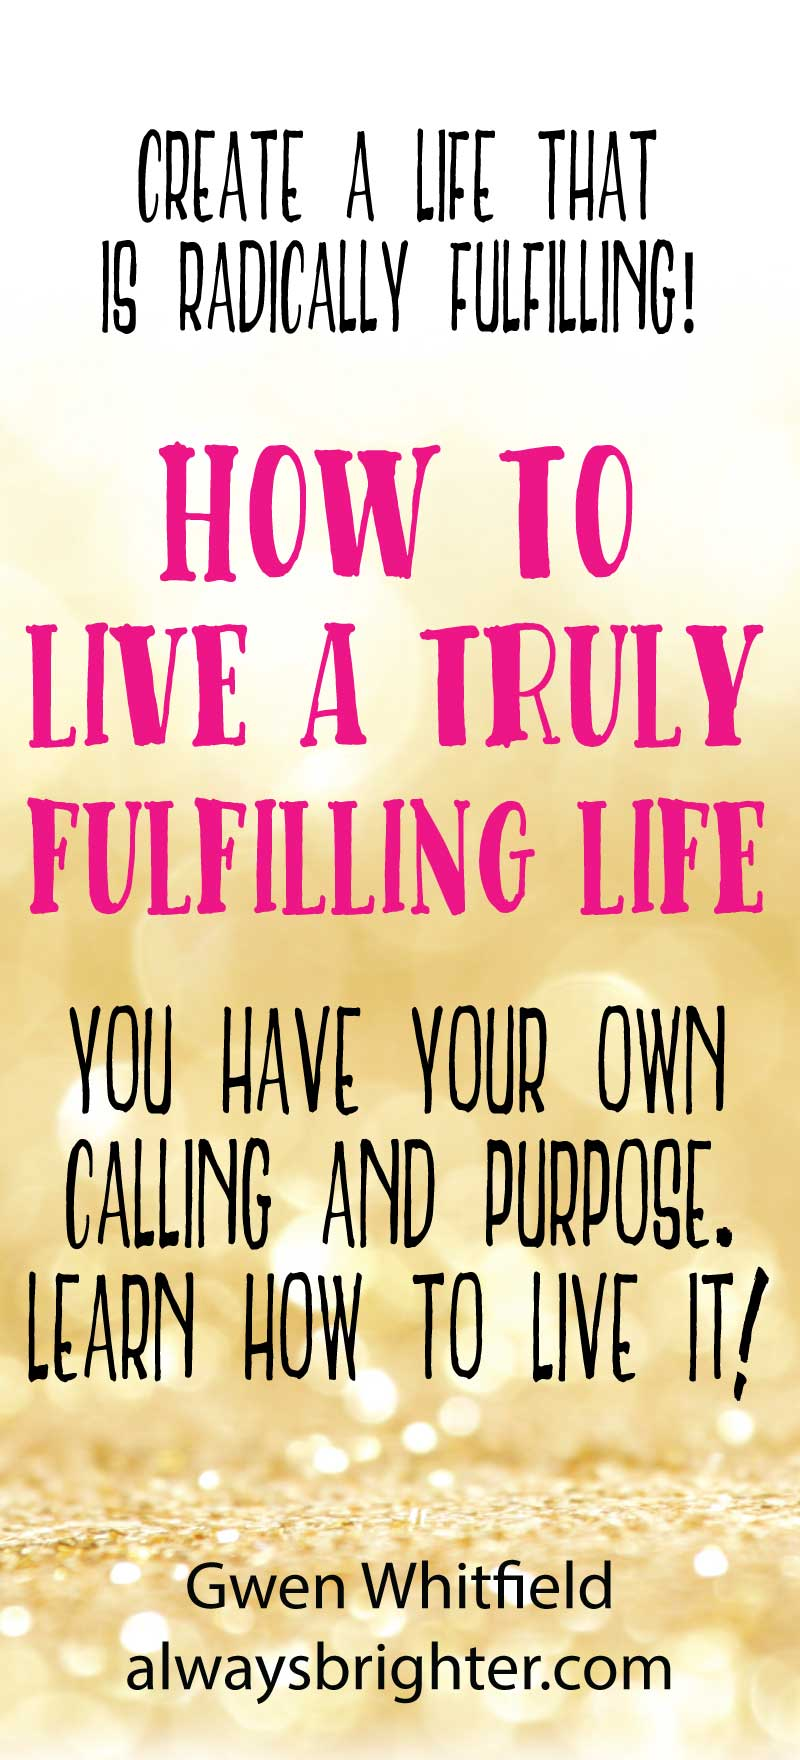 The Art of Fulfillment: How to live a truly fulfilling life by knowing your calling and purpose.